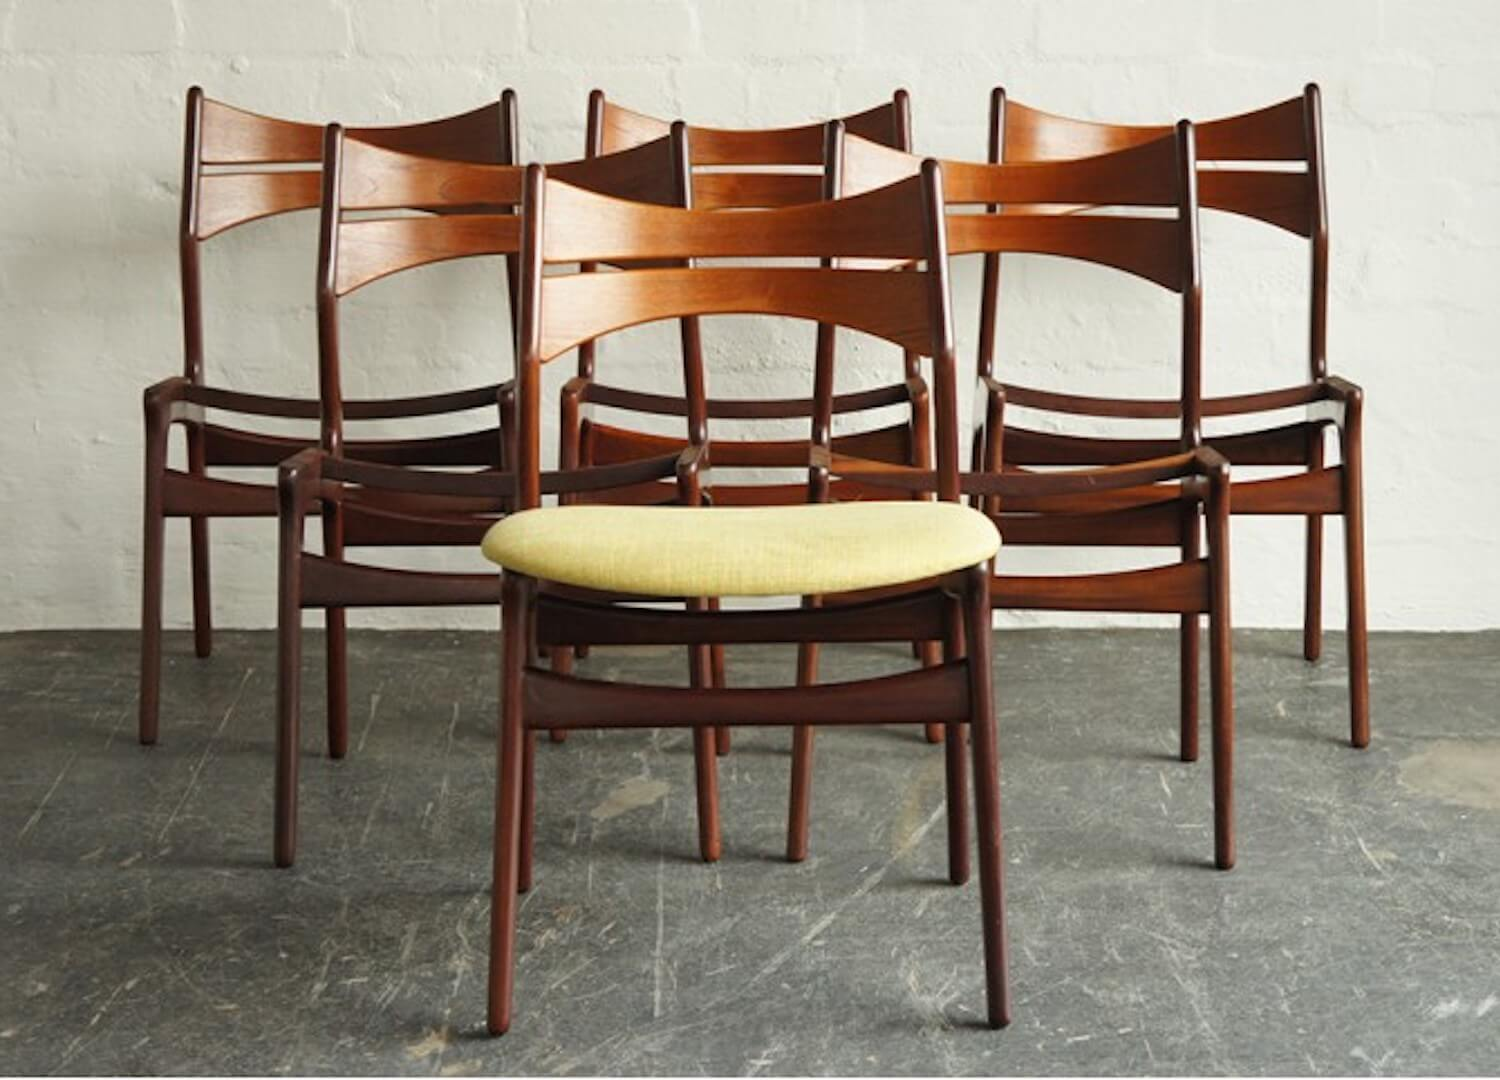 est living erik buch dining chairs angelucci furniture 1